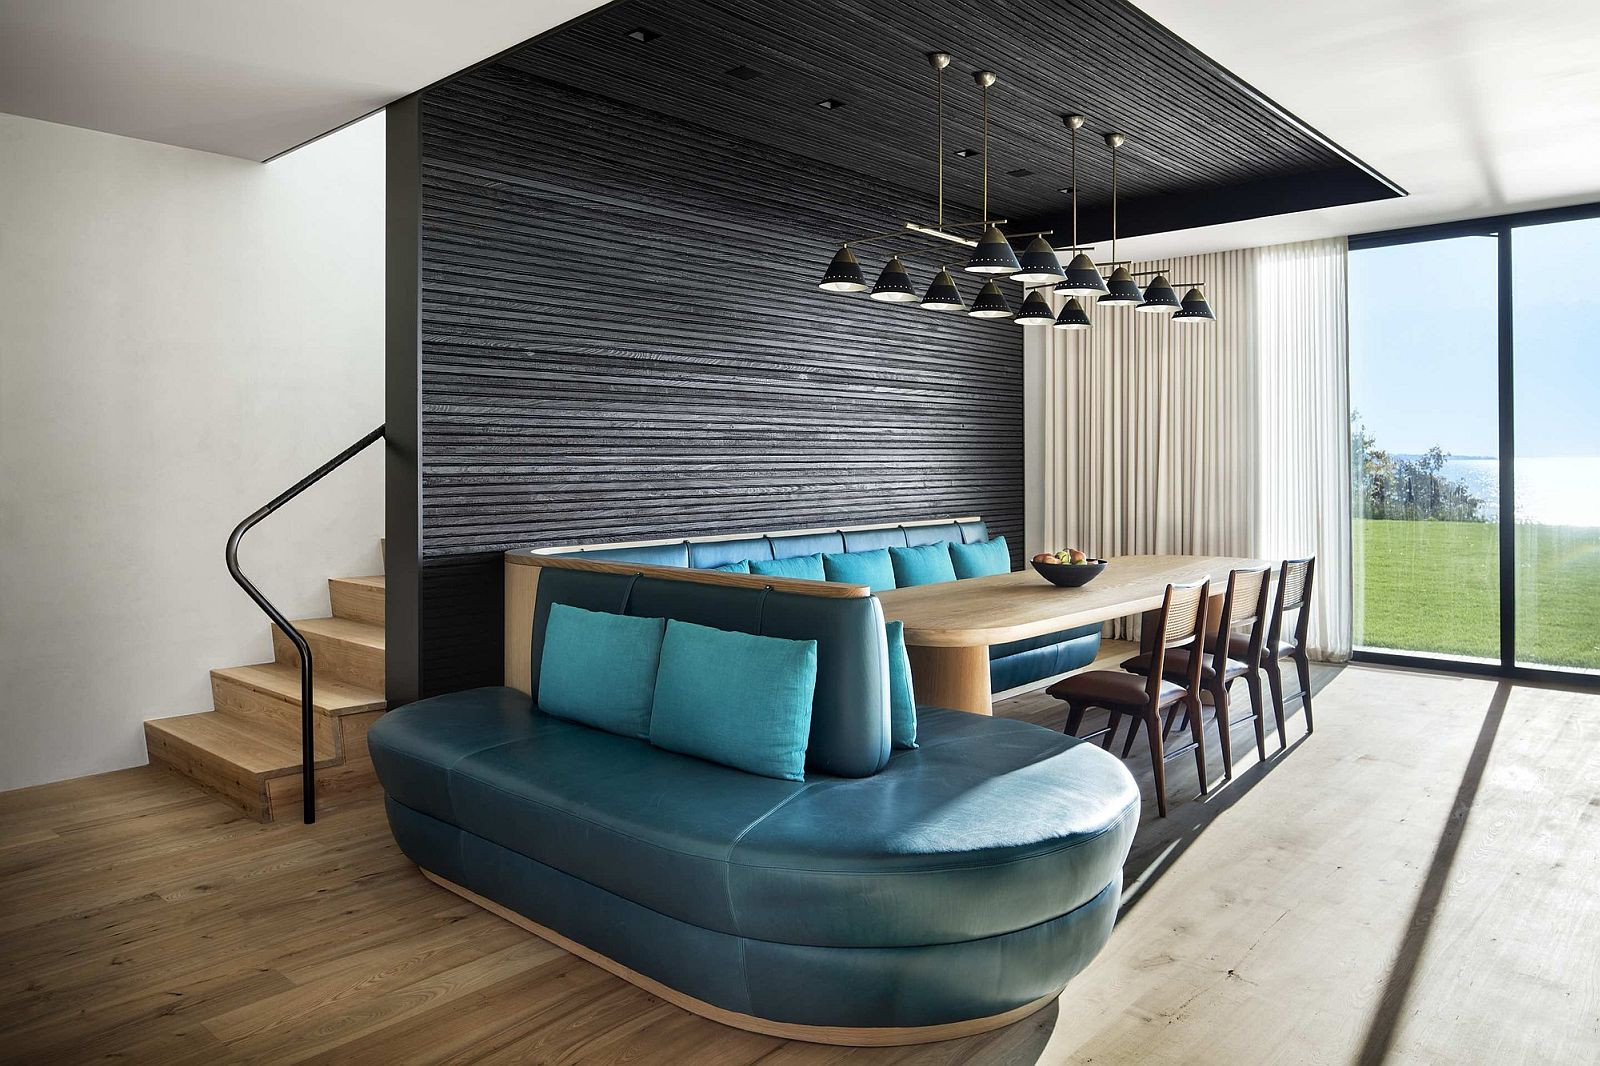 Stunning-banquet-dining-in-turquoise-blue-and-minimal-wooden-table